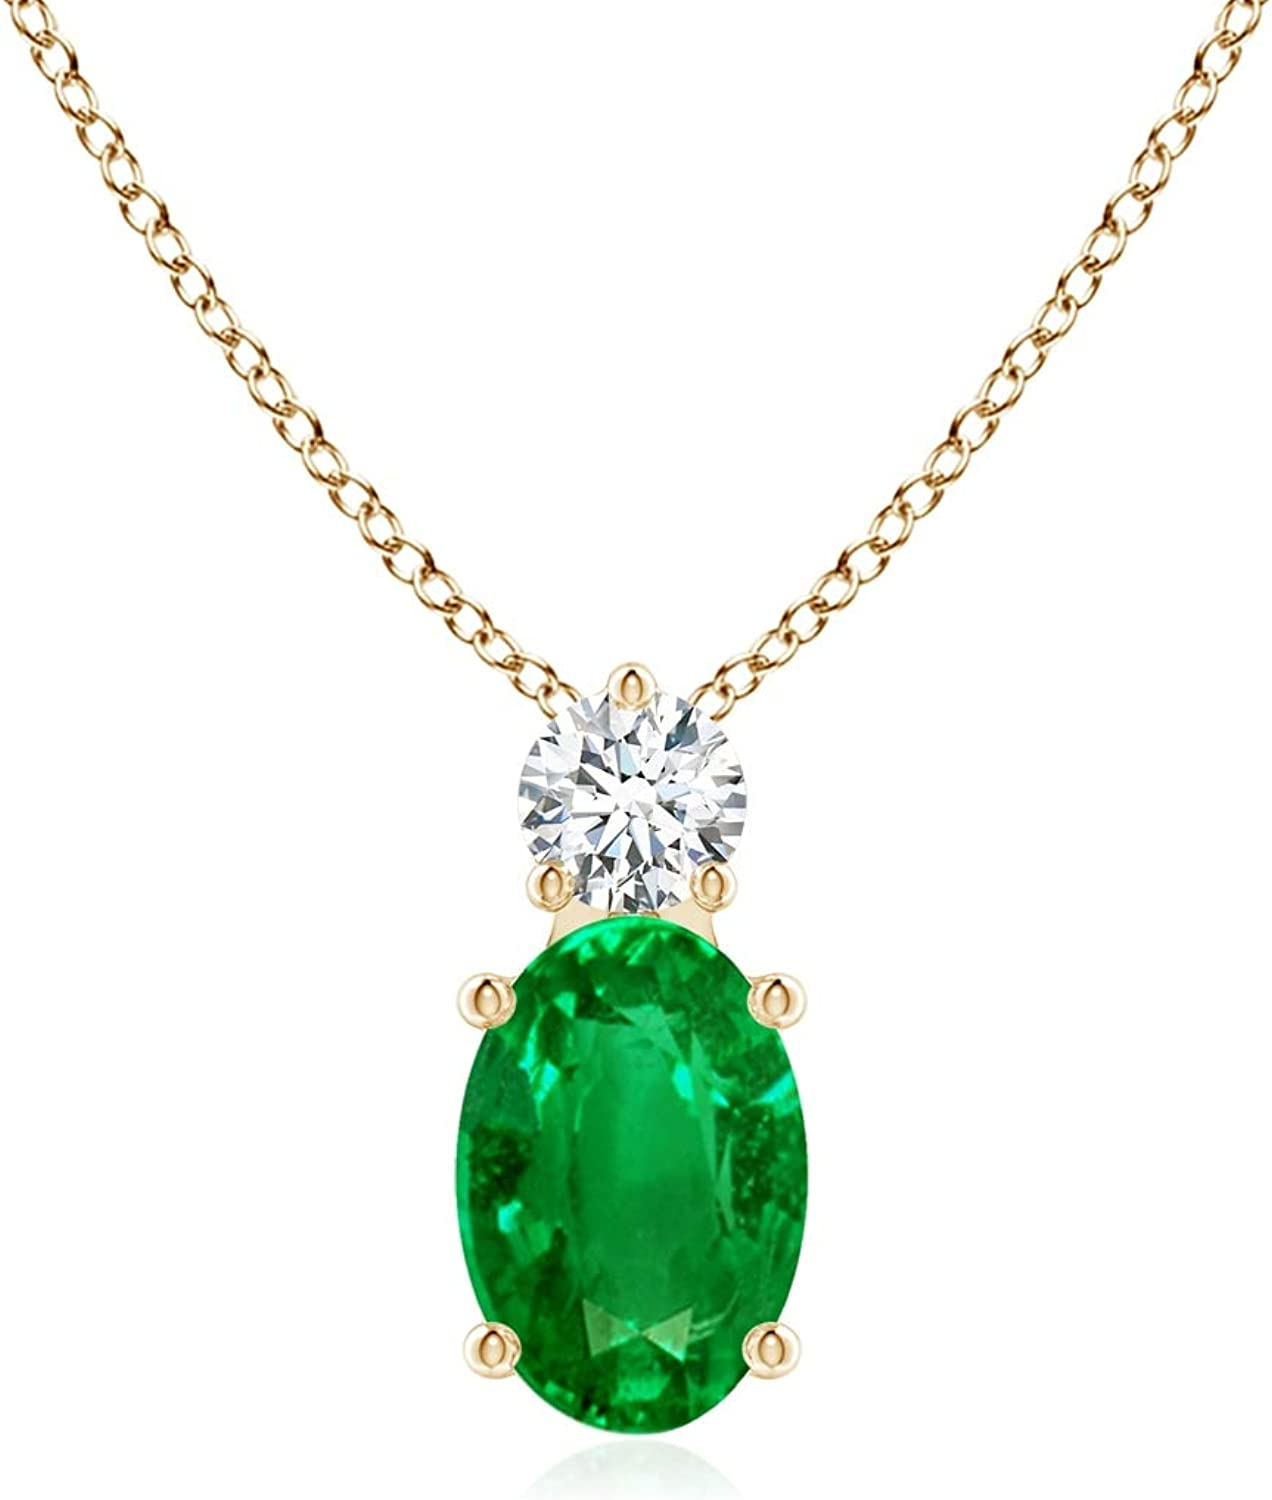 Super sale period limited Oval Emerald Solitaire Max 41% OFF Pendant with Diamond 14K Gold in Yellow